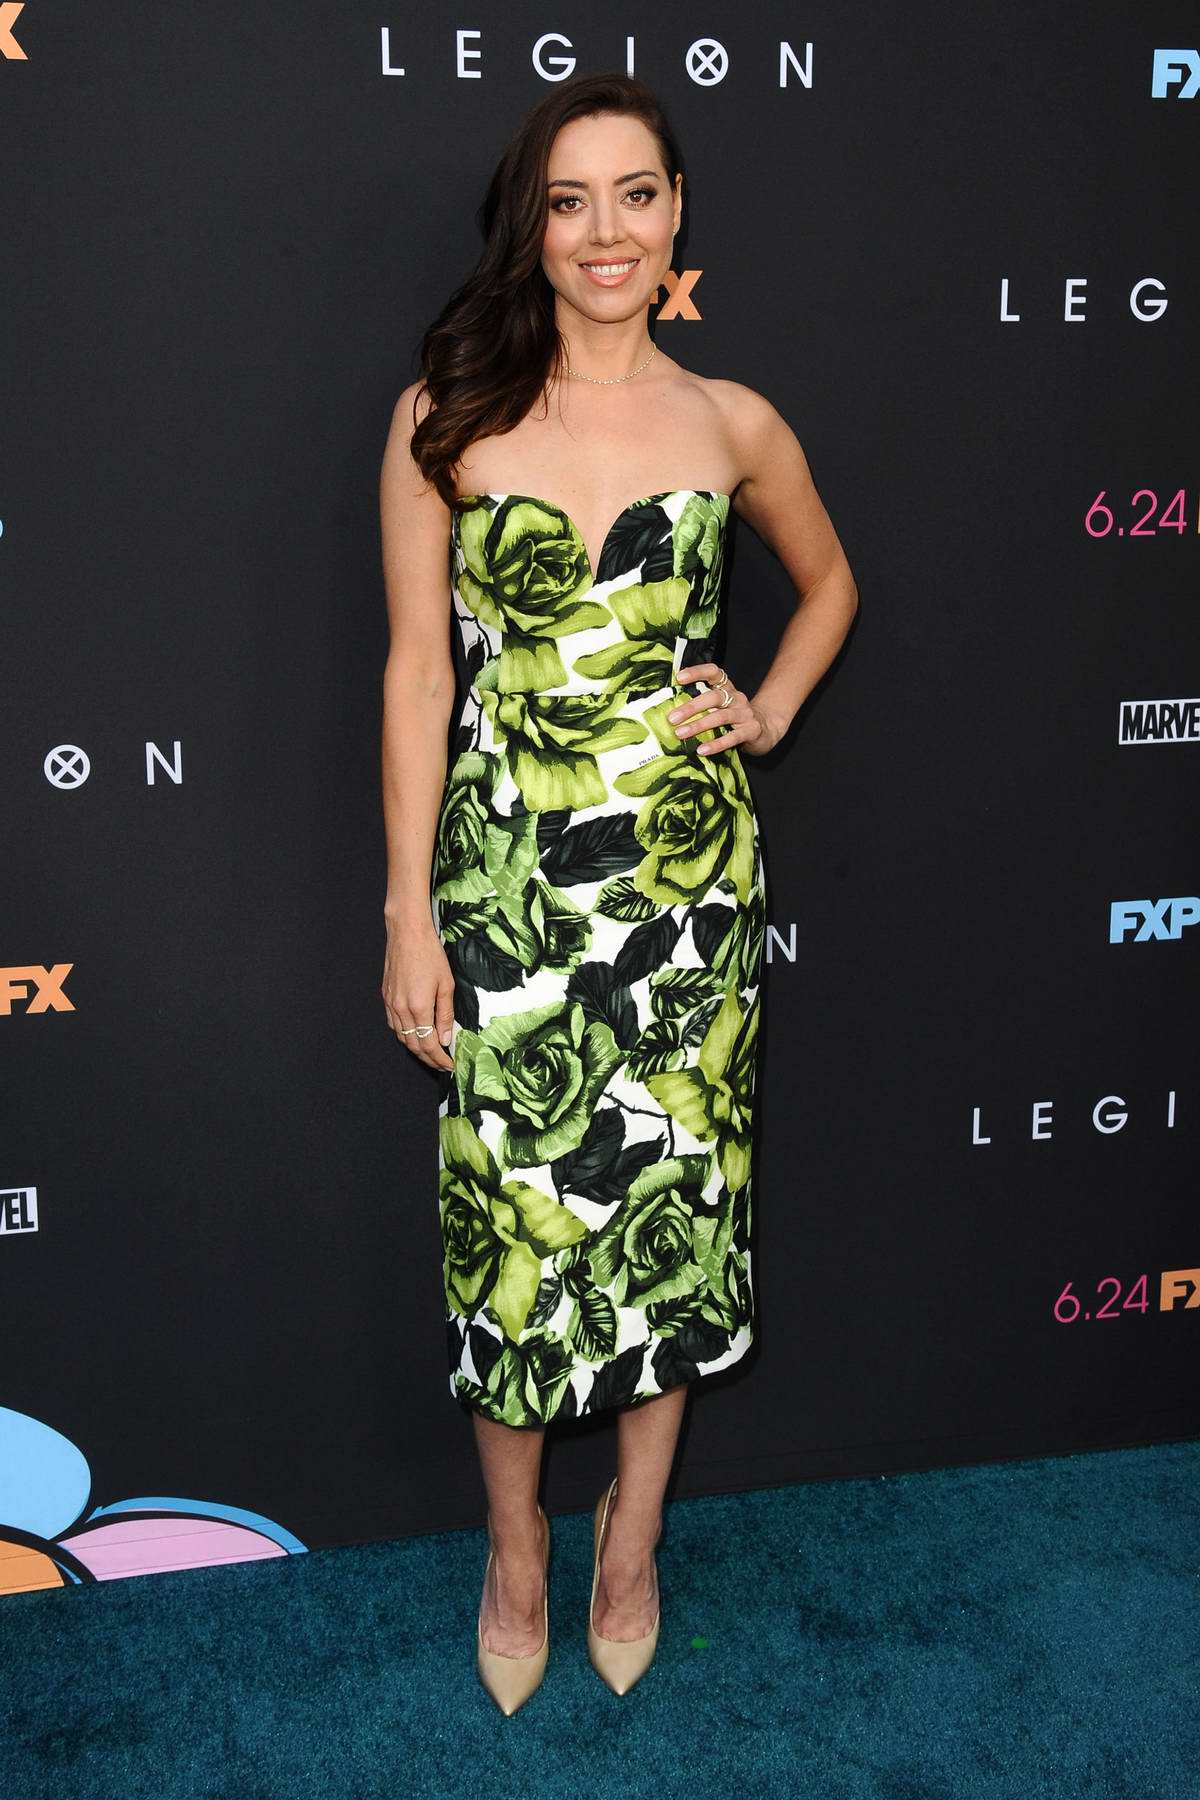 Aubrey Plaza attends the Premiere of FX's 'Legion' Season 3 in Hollywood, California